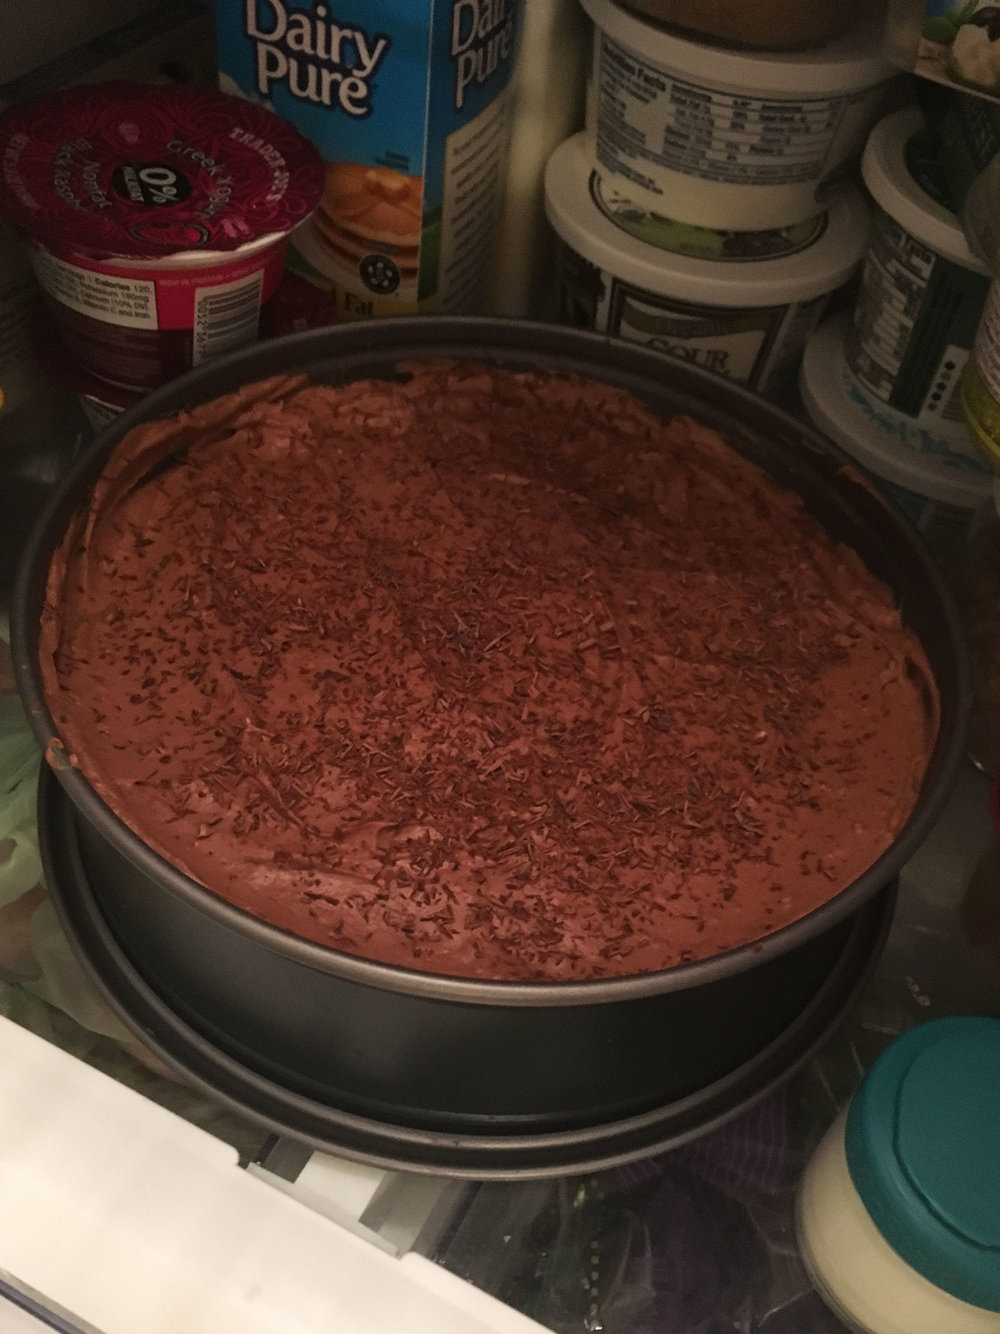 I tested out a gluten free no-bake chocolate cheesecake for dinner with coworkers and it was a hit. Some more tweaking and taste-testing, and I'll share it on the blog.